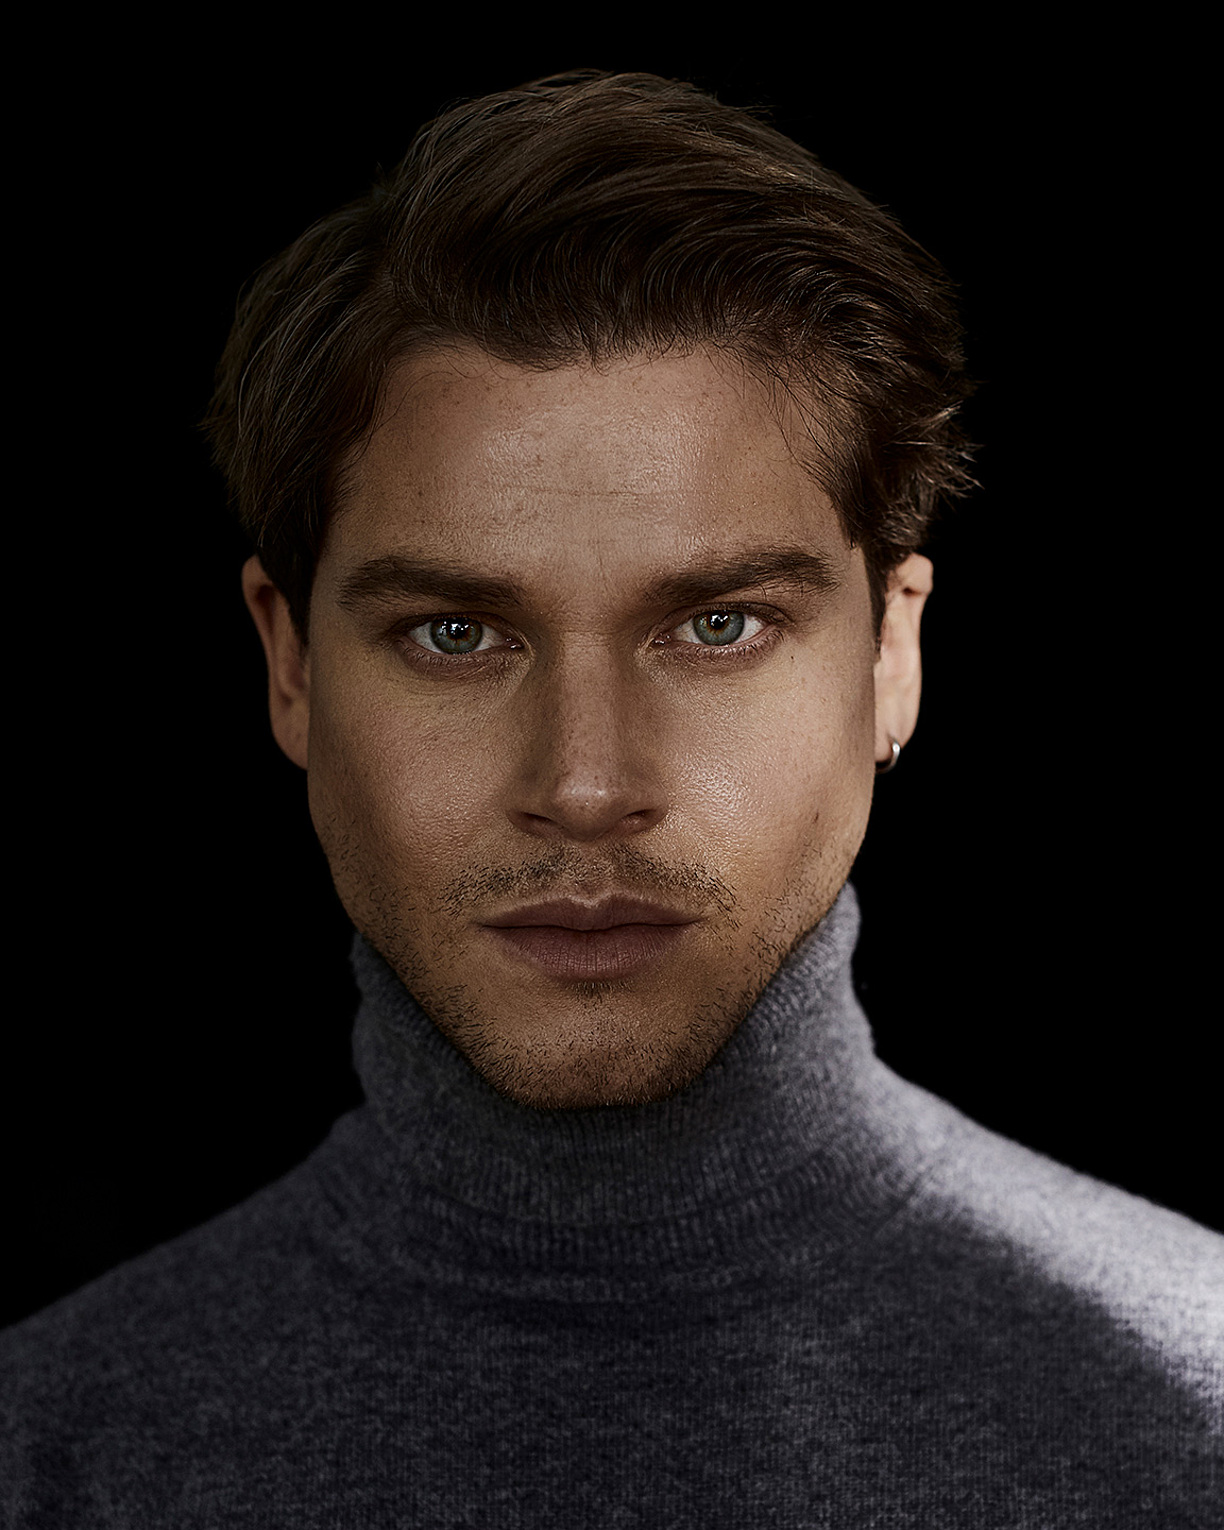 A portrait of a male model who wears a grey pullover with a turtle neck.